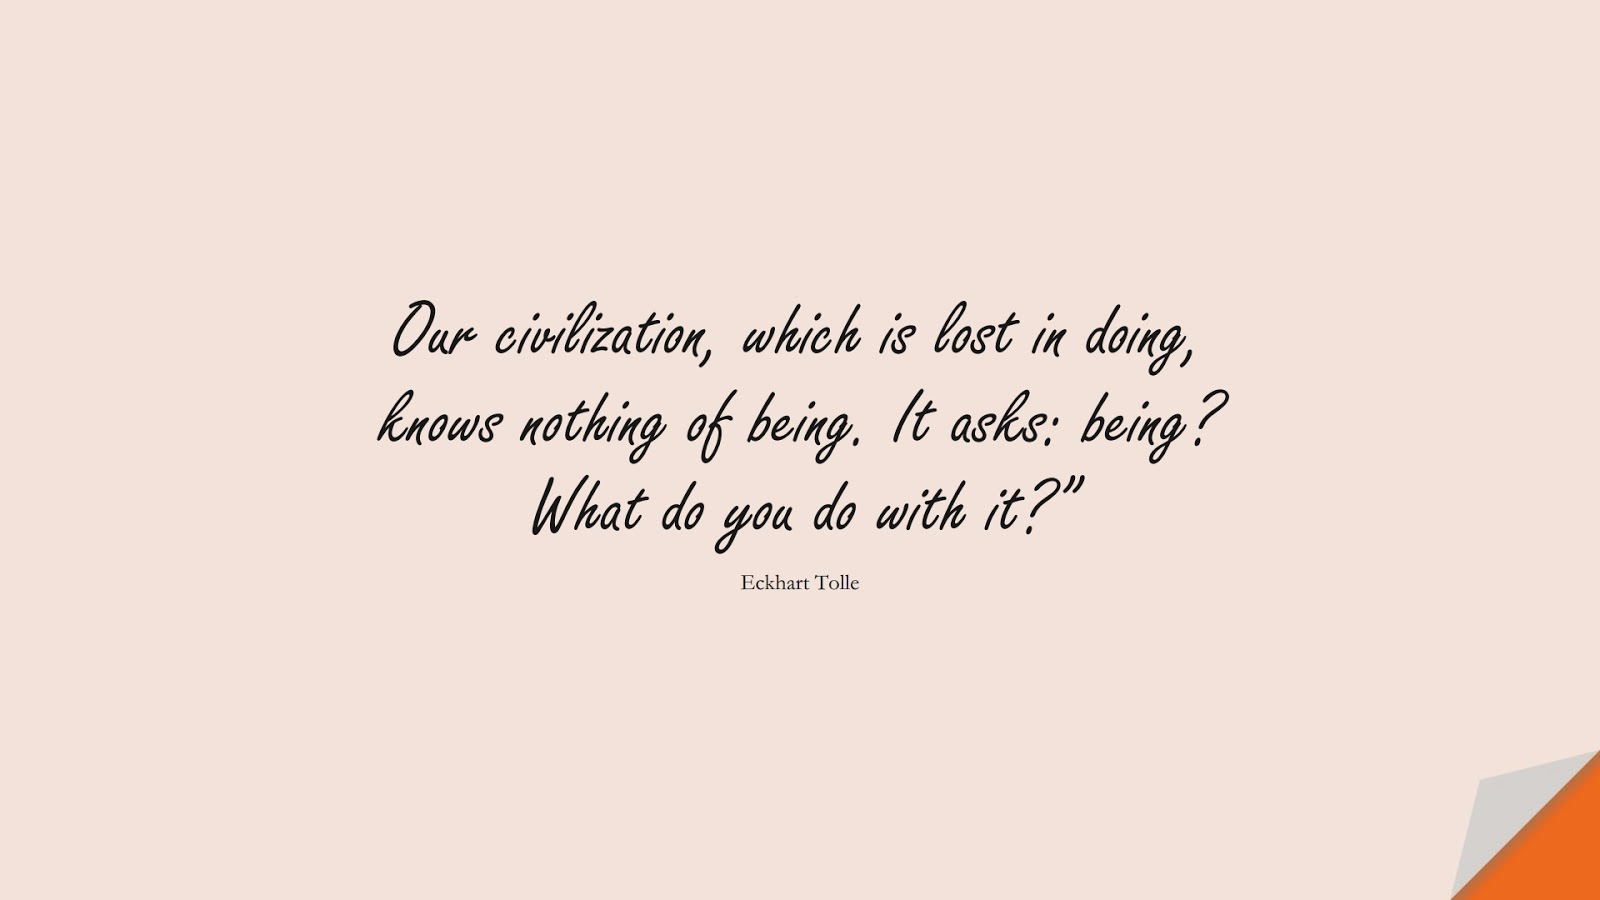 """Our civilization, which is lost in doing, knows nothing of being. It asks: being? What do you do with it?"""" (Eckhart Tolle);  #StressQuotes"""